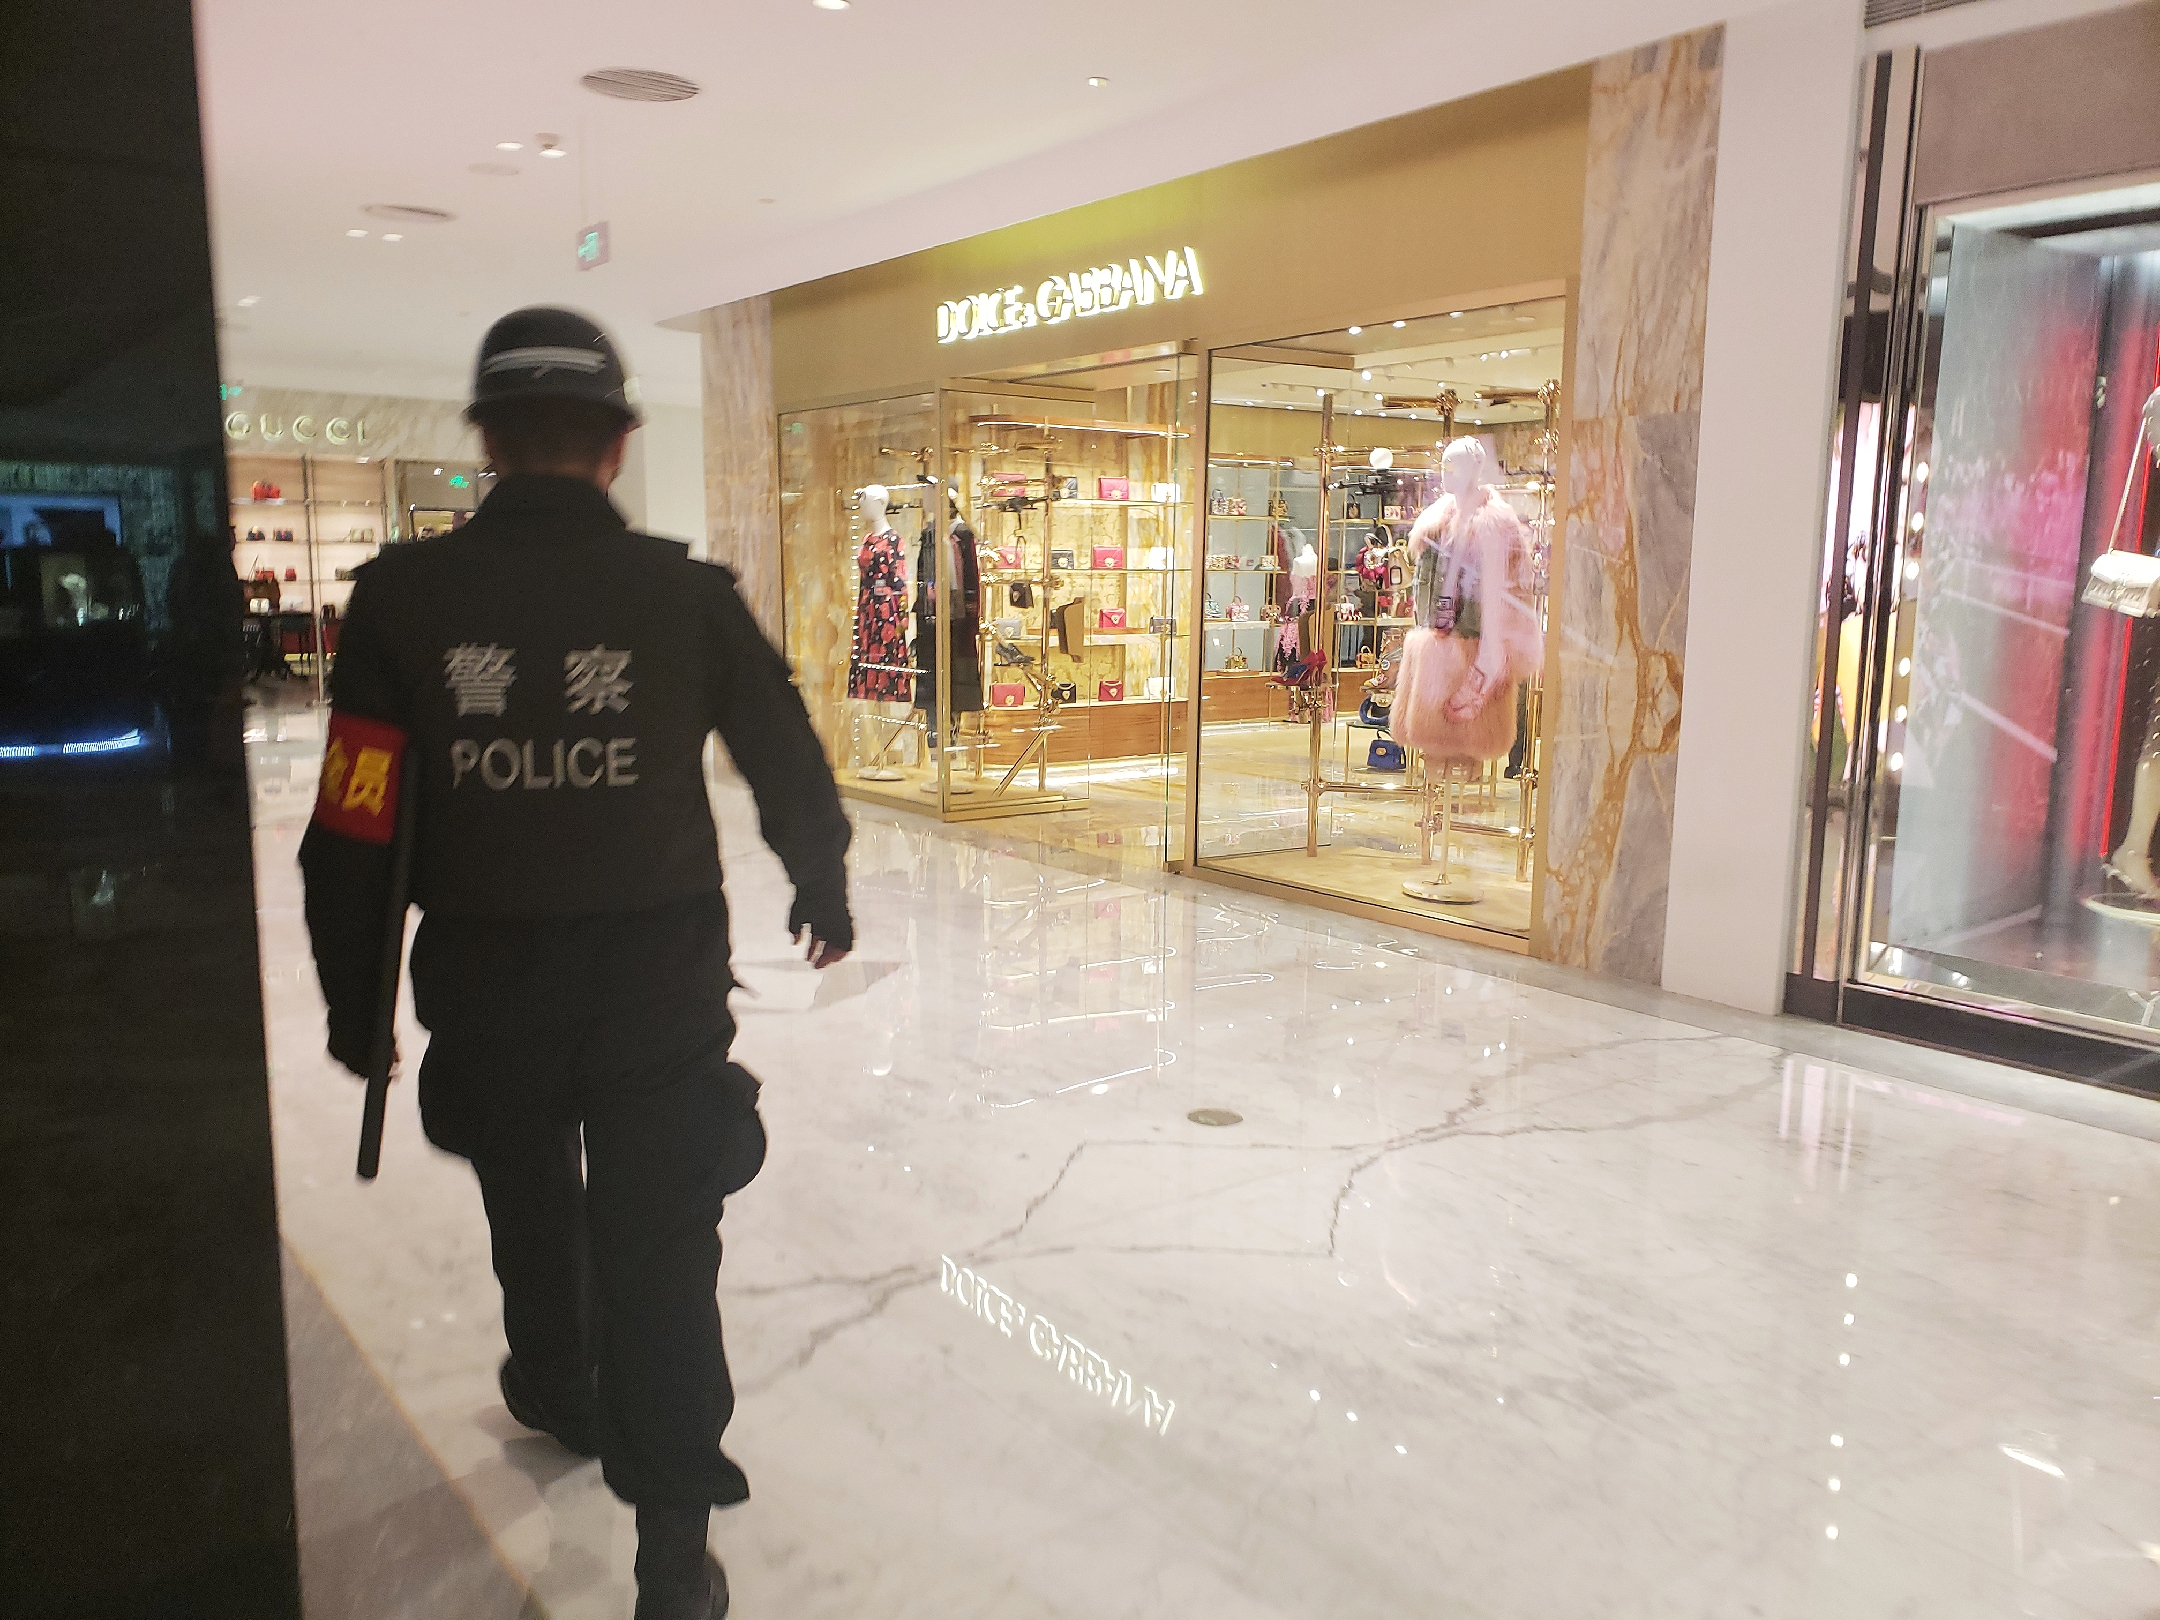 A police officer stands guard outside the Dolce & Gabbana store in SKP Beijing.